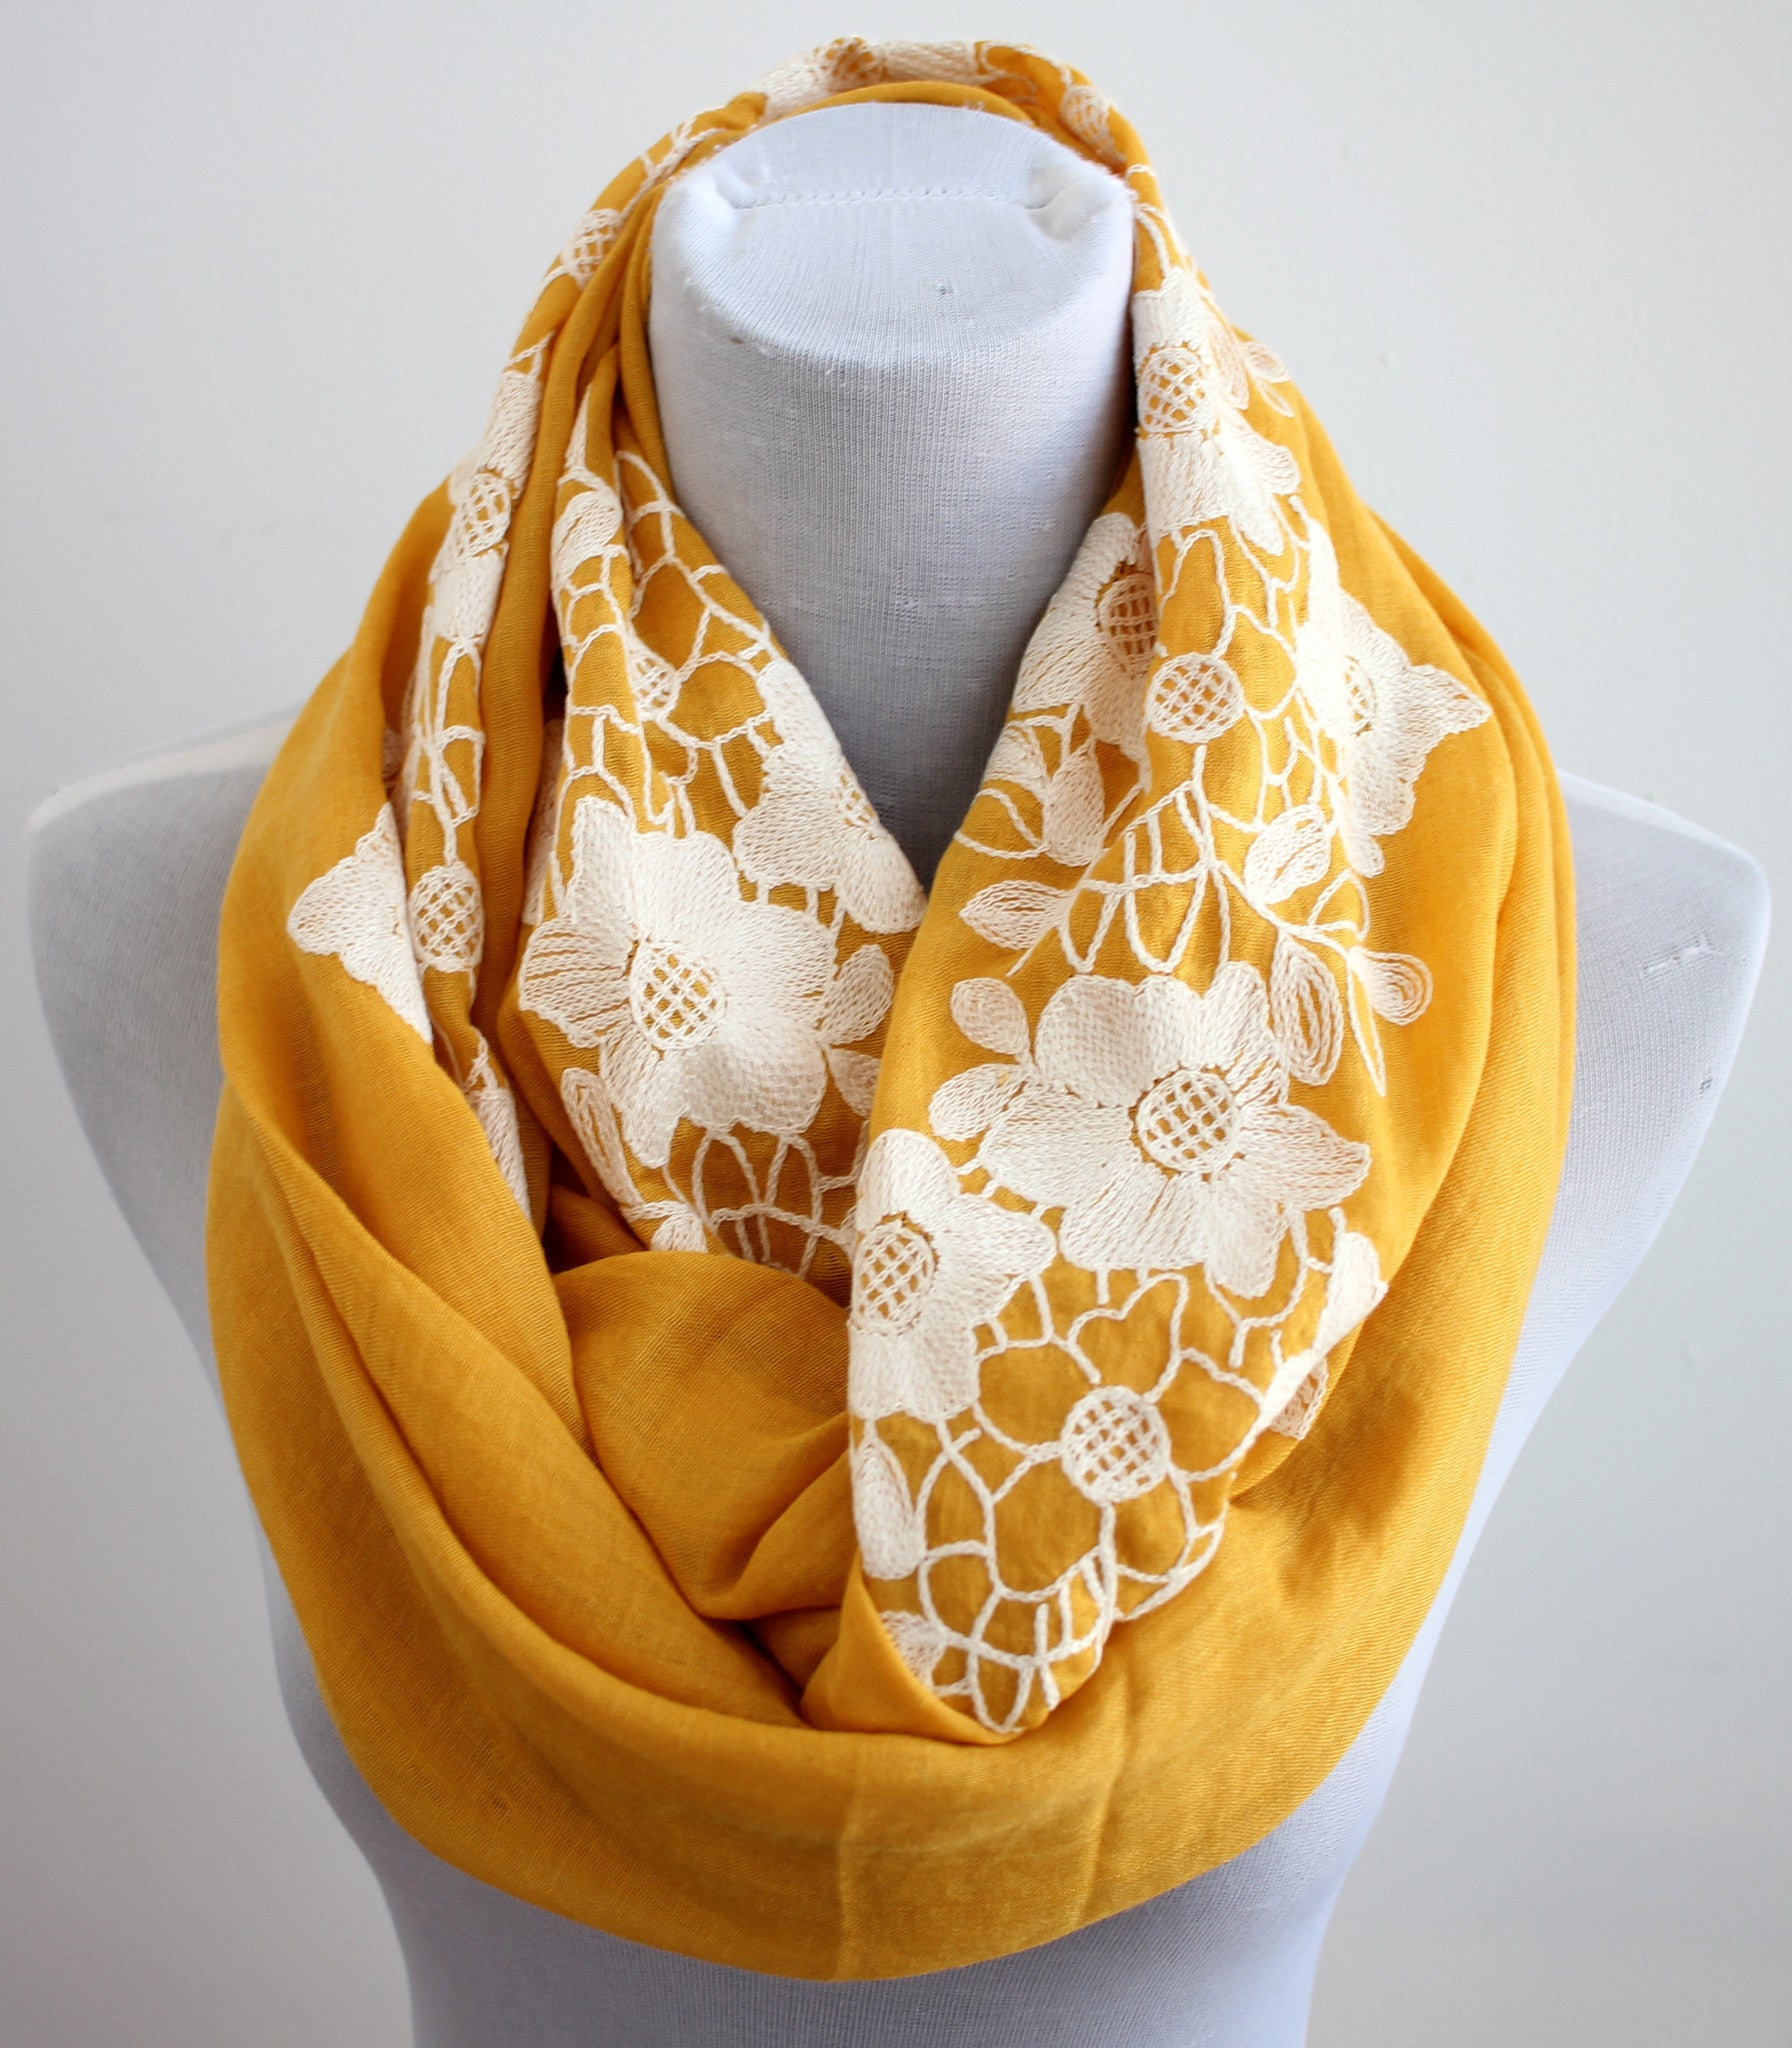 MUSTARD YELLOW FLORAL EMBROIDERY INFINITY SCARF - Bean Concept - Etsy